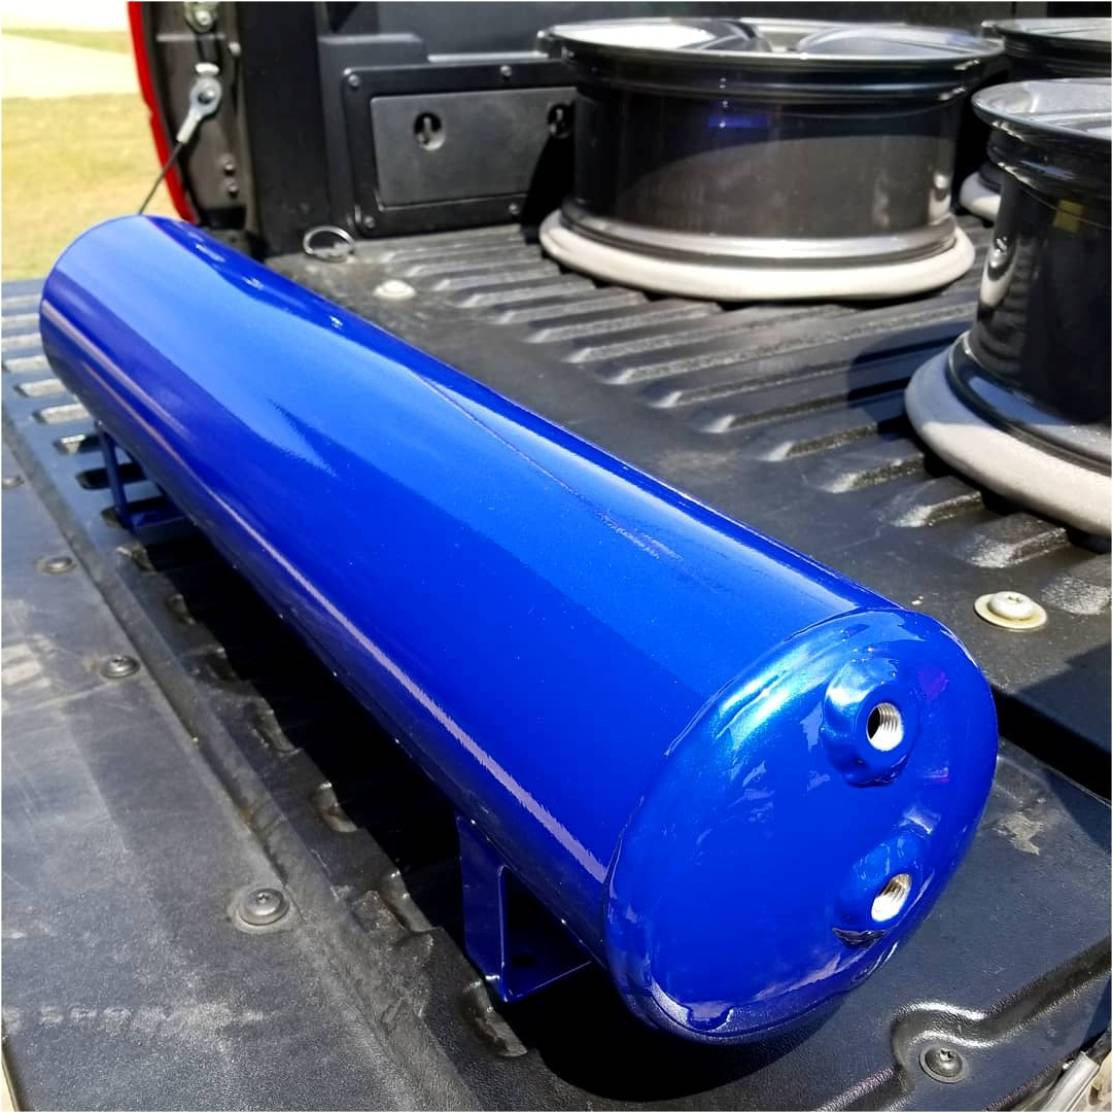 Powder Coated Air Tank for Classy House Productions